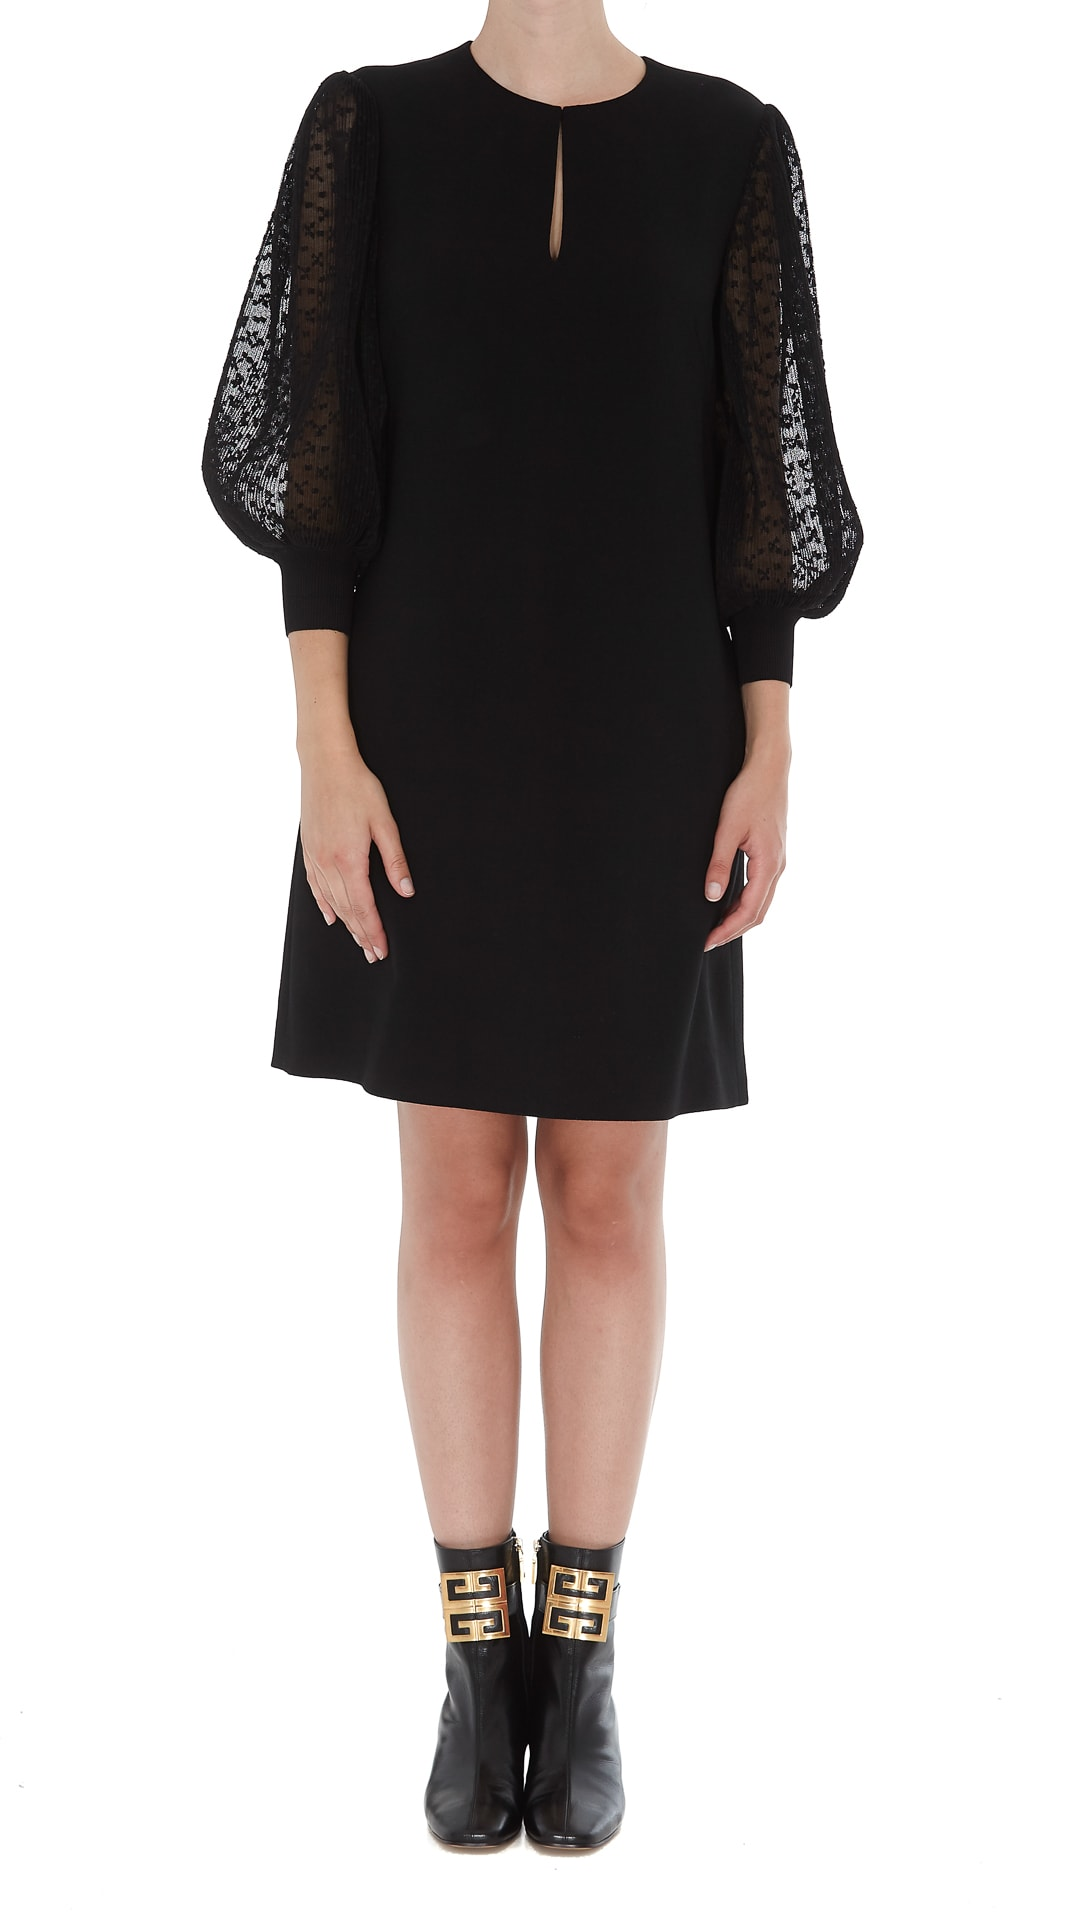 Givenchy Dress With Lace Sleeves